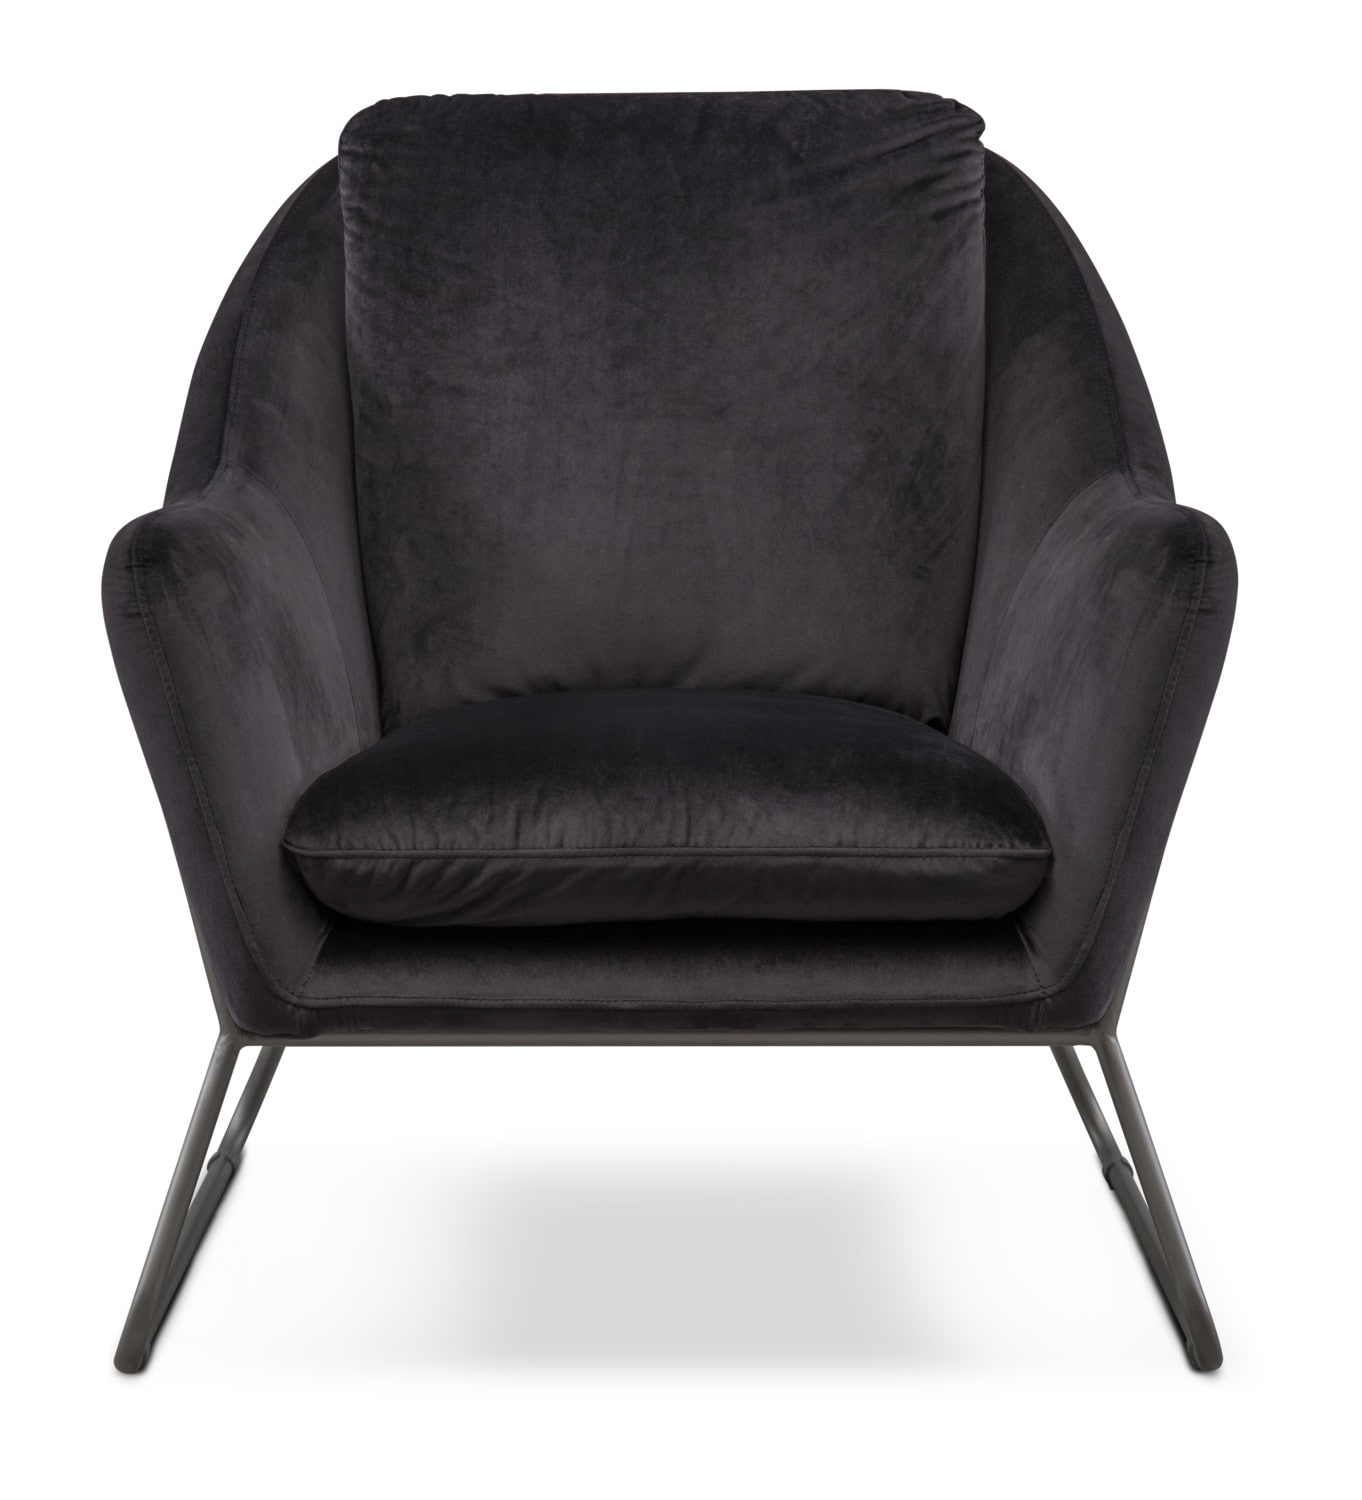 Black Accent Chairs Willow Accent Chair Black